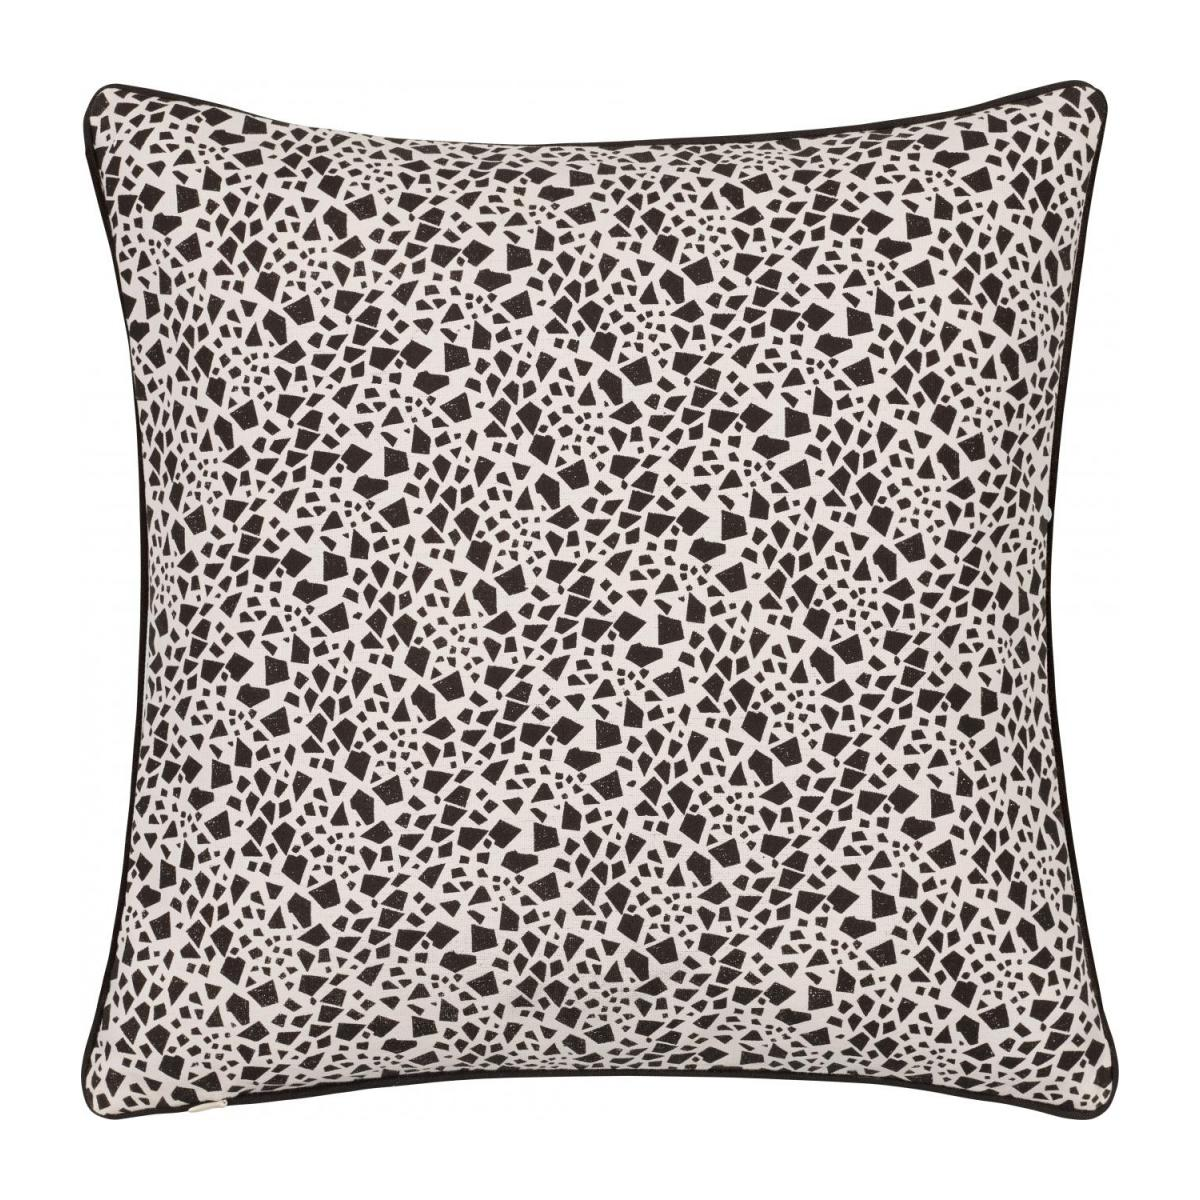 Giraffe Patterned Printed Cotton Cushion 40x40cm n°3